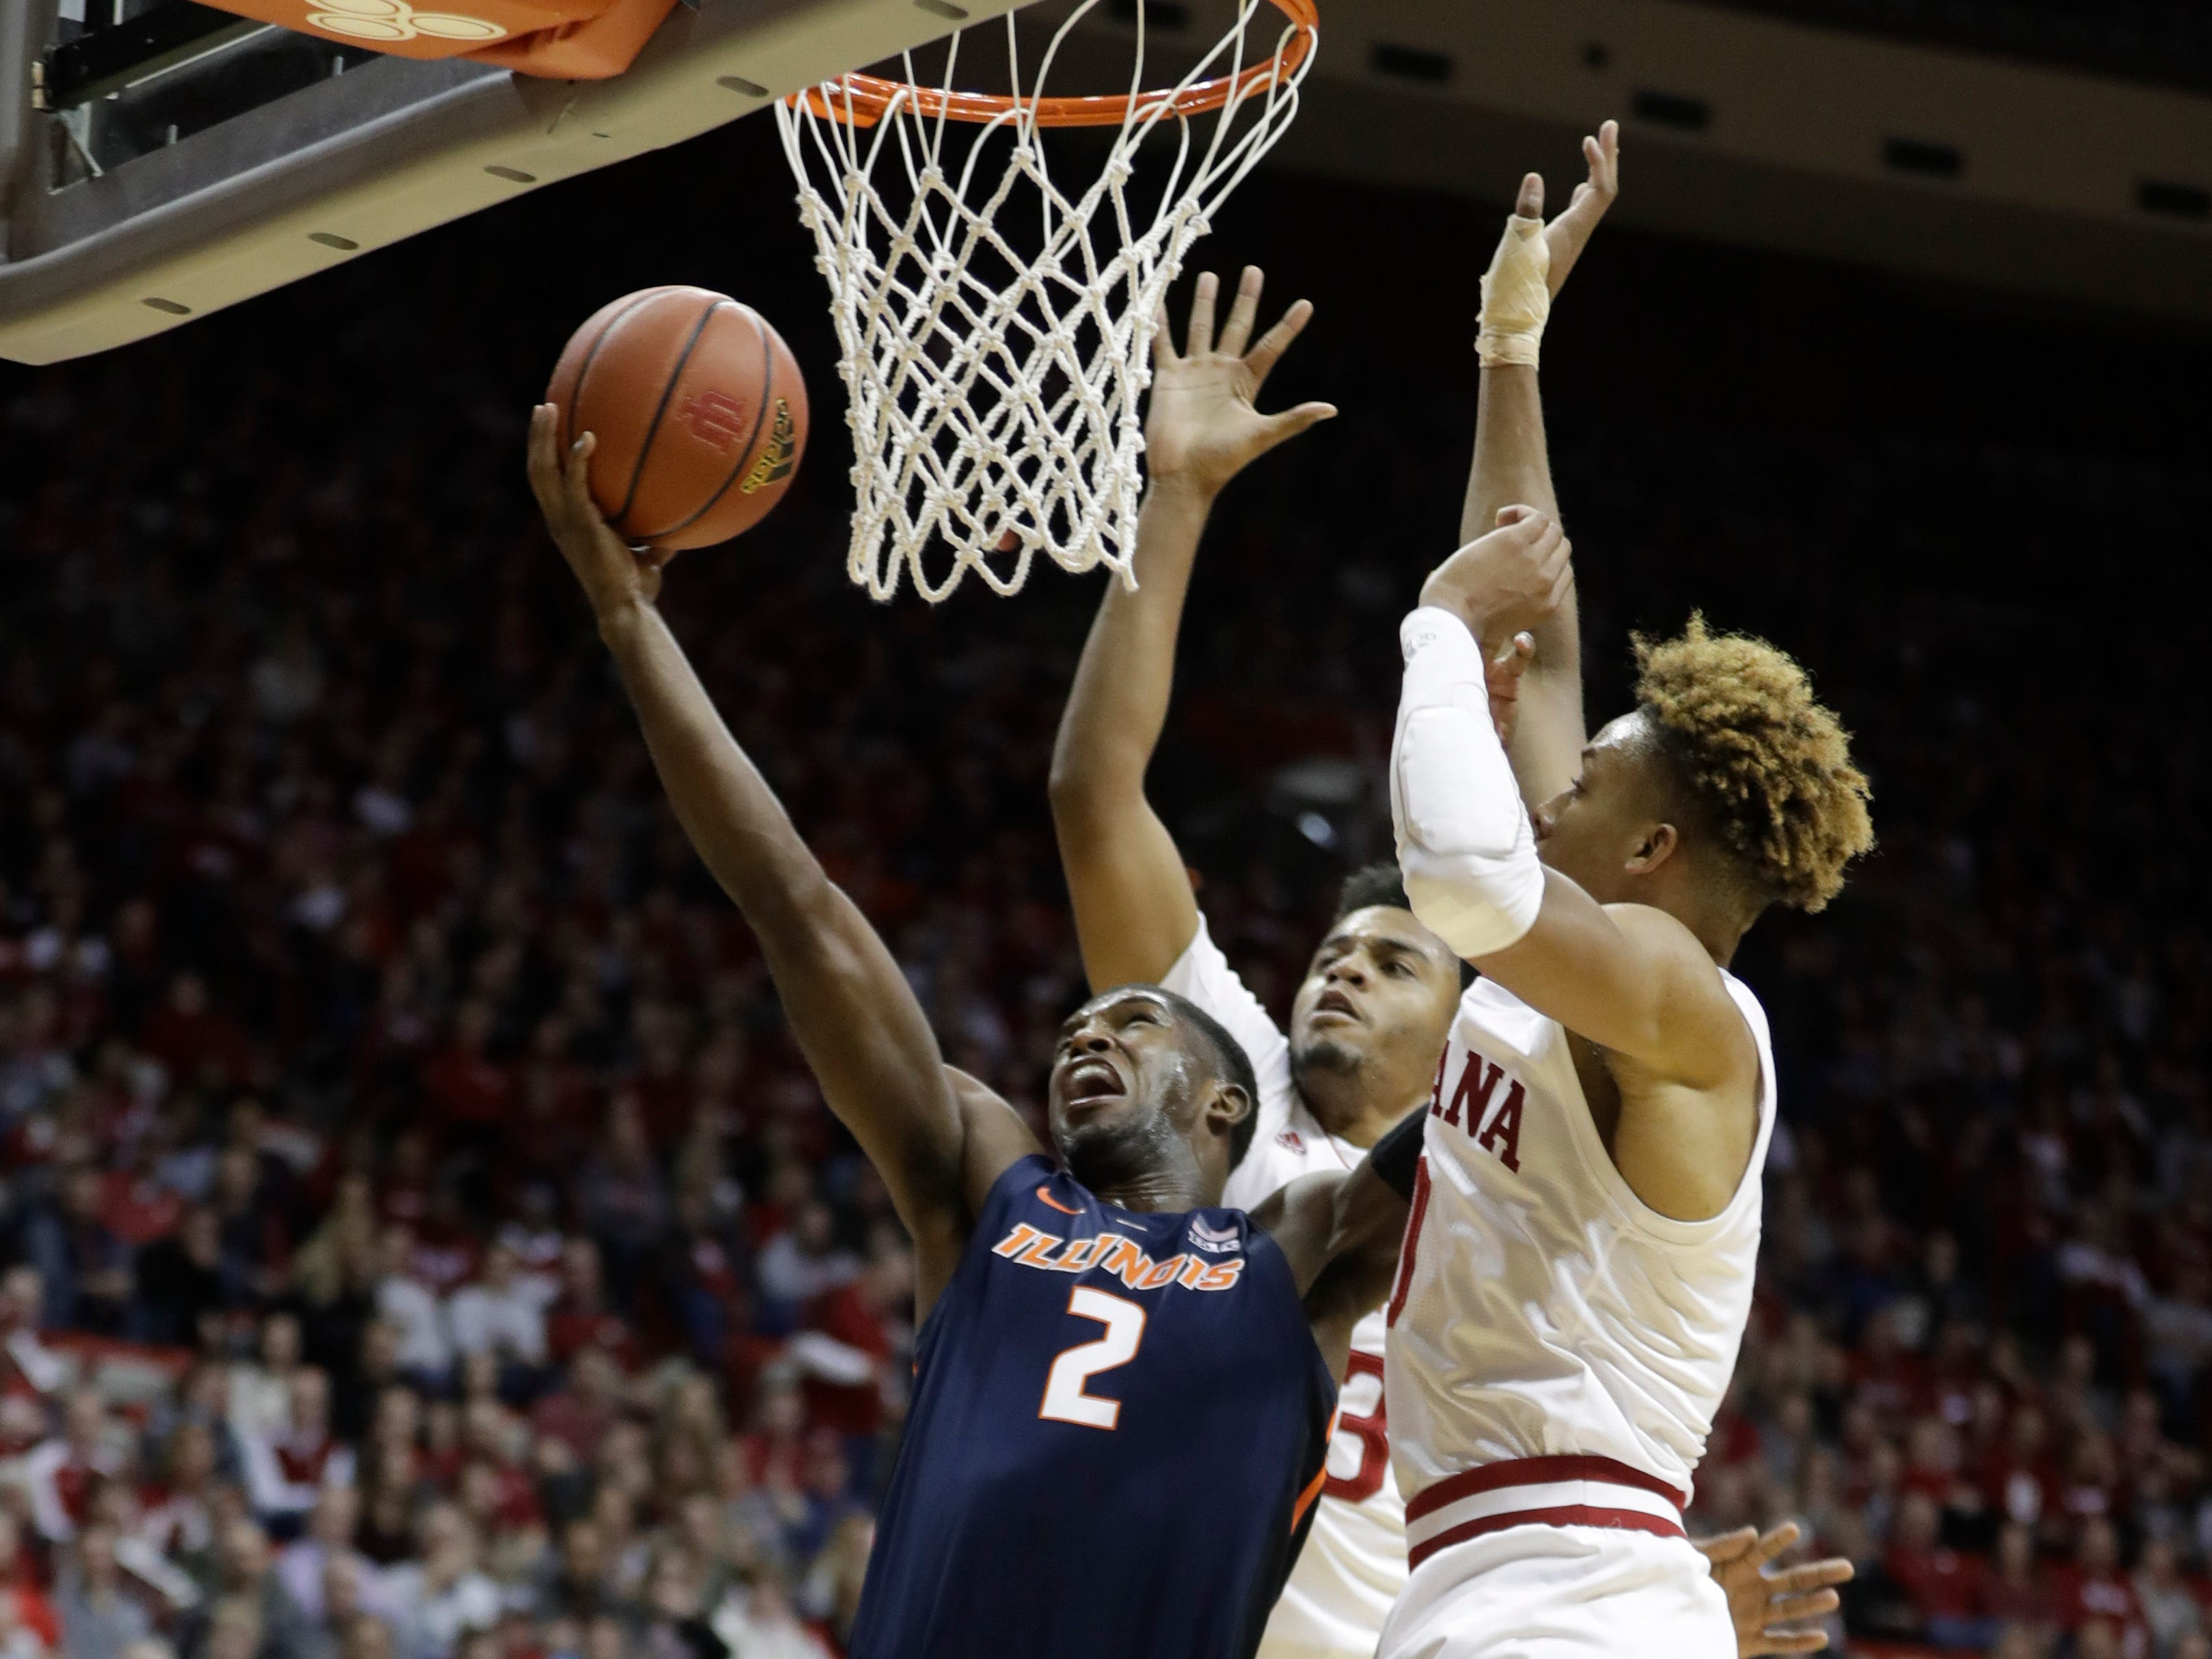 Illinois' Kipper Nichols (2) puts up a shot against Indiana's Juwan Morgan (13) and Romeo Langford (0) during the first half of an NCAA college basketball game Thursday, Jan. 3, 2019, in Bloomington, Ind.